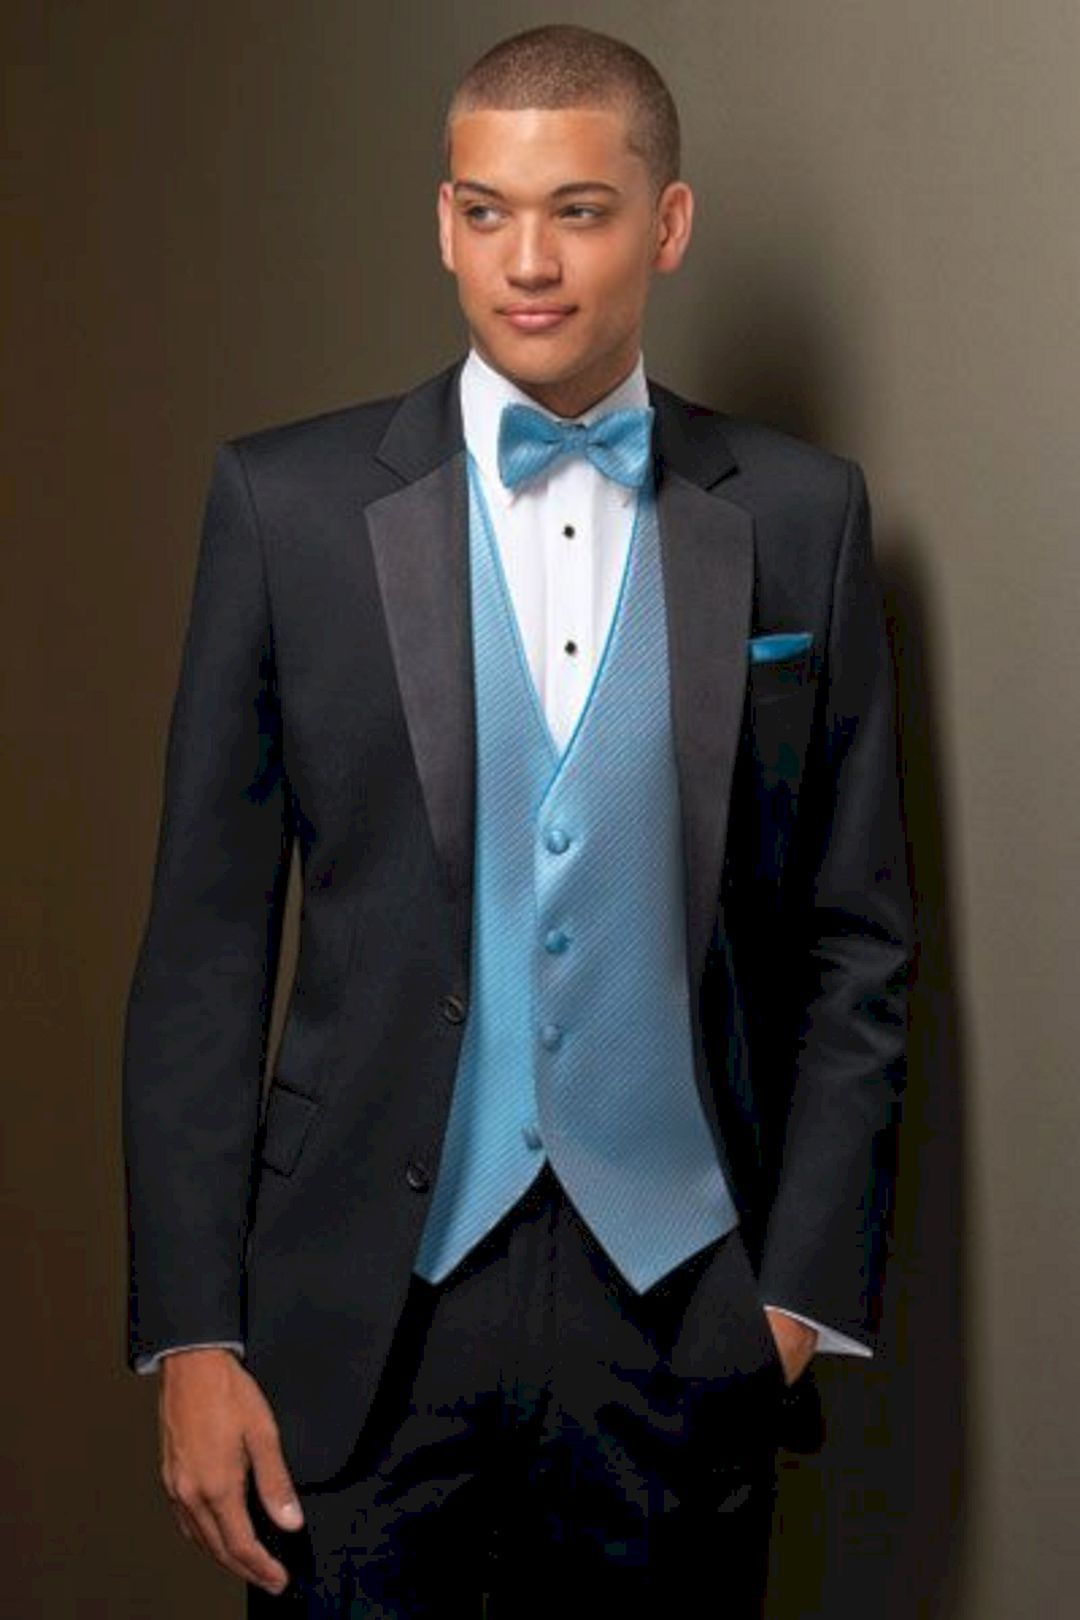 Light Blue Prom Tuxedo with Gray Ties | Grey tie, Prom and Blue tuxedos